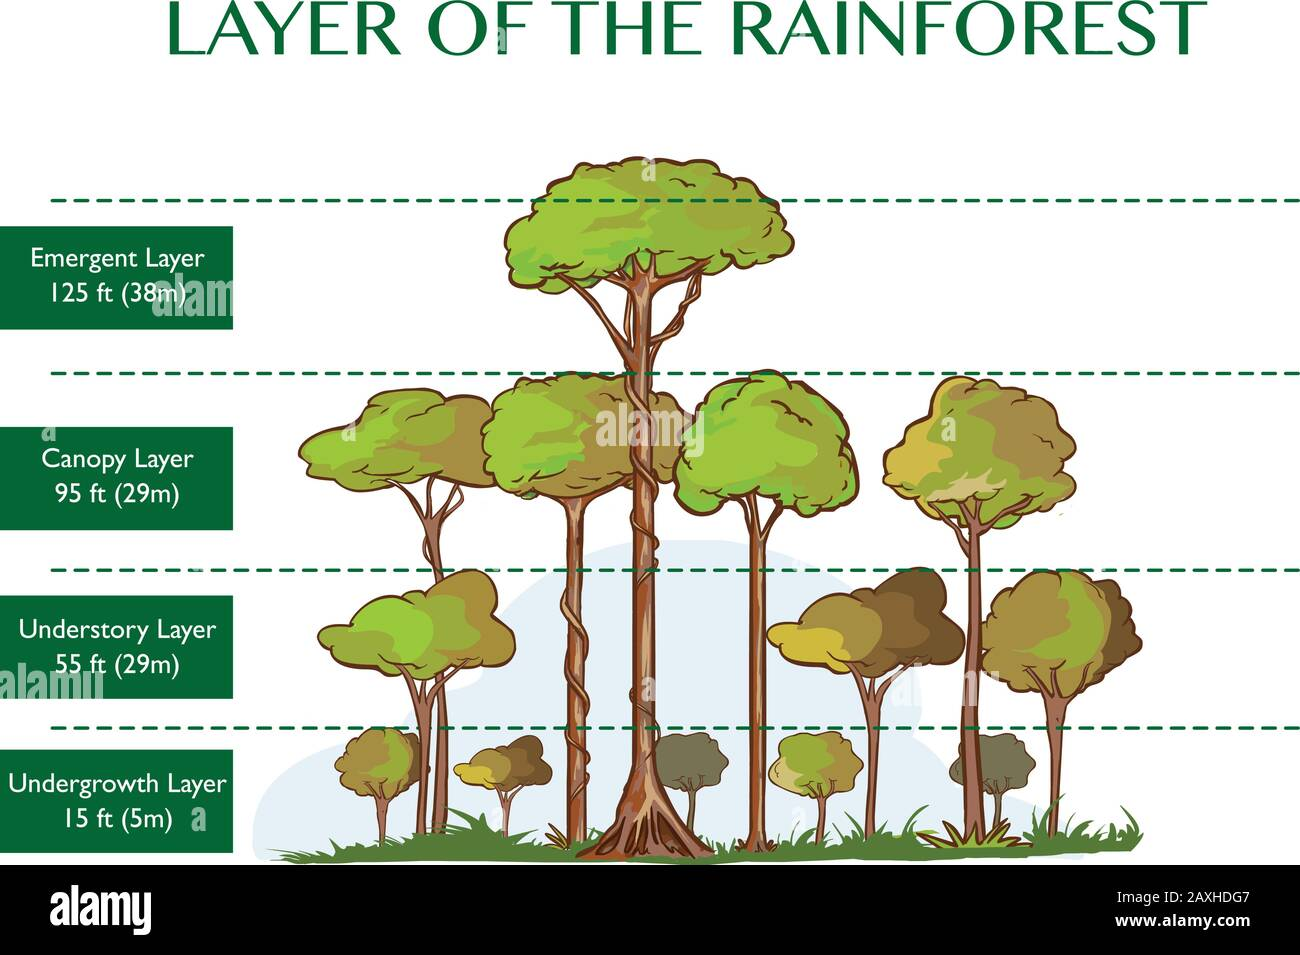 Vector Illustration Of The Rainforest Layers Stock Vector